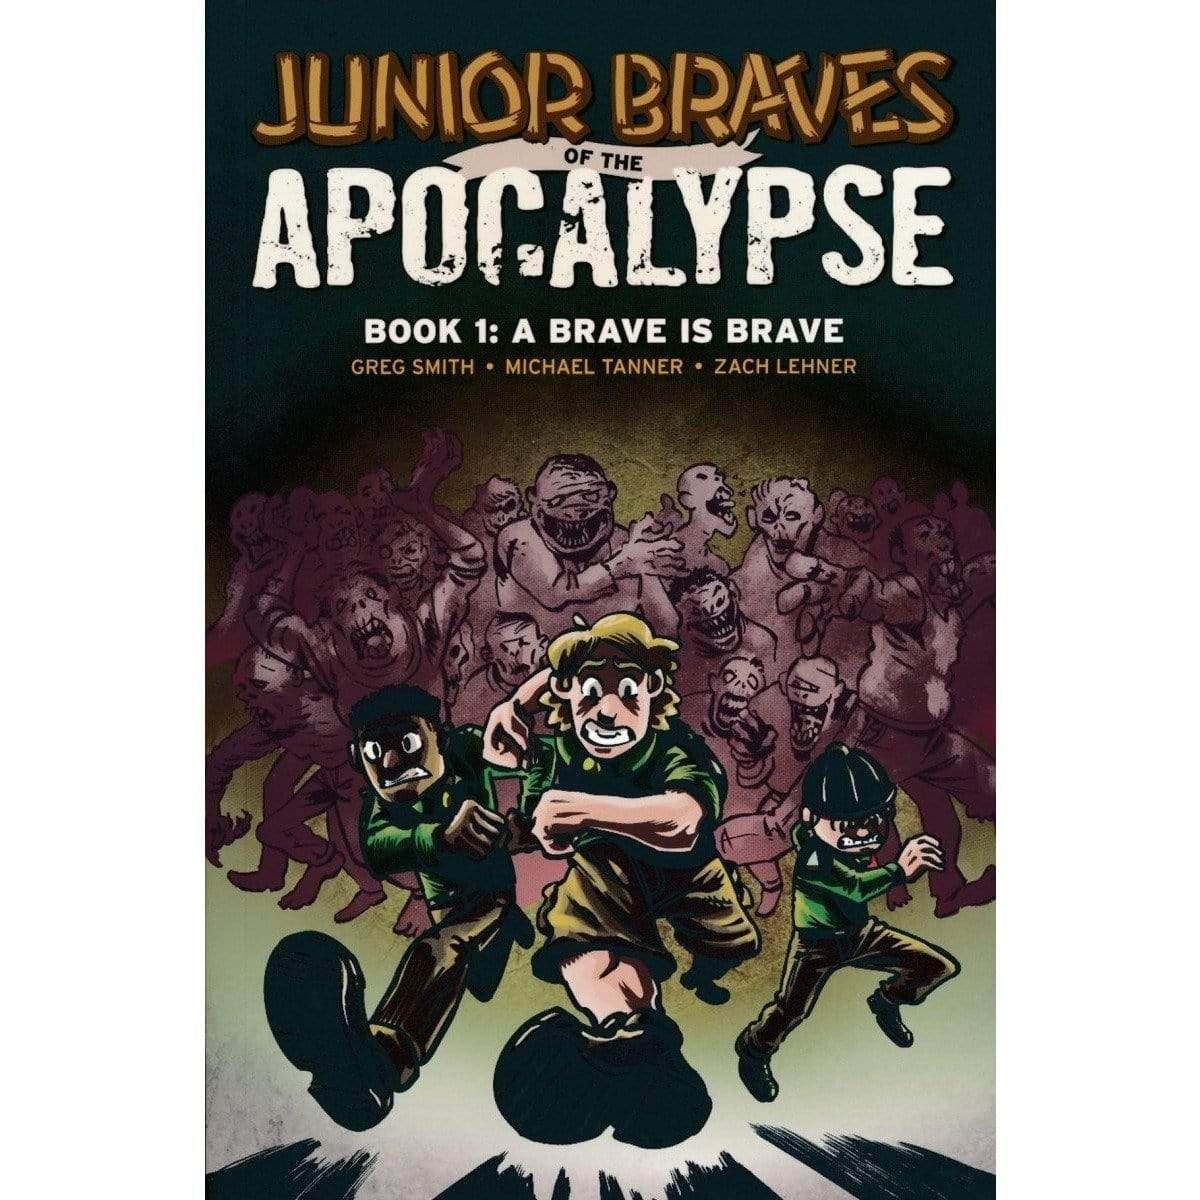 Junior Braves of the Apocalypse: Book 1-A Brave Is Brave Alliance Games Books